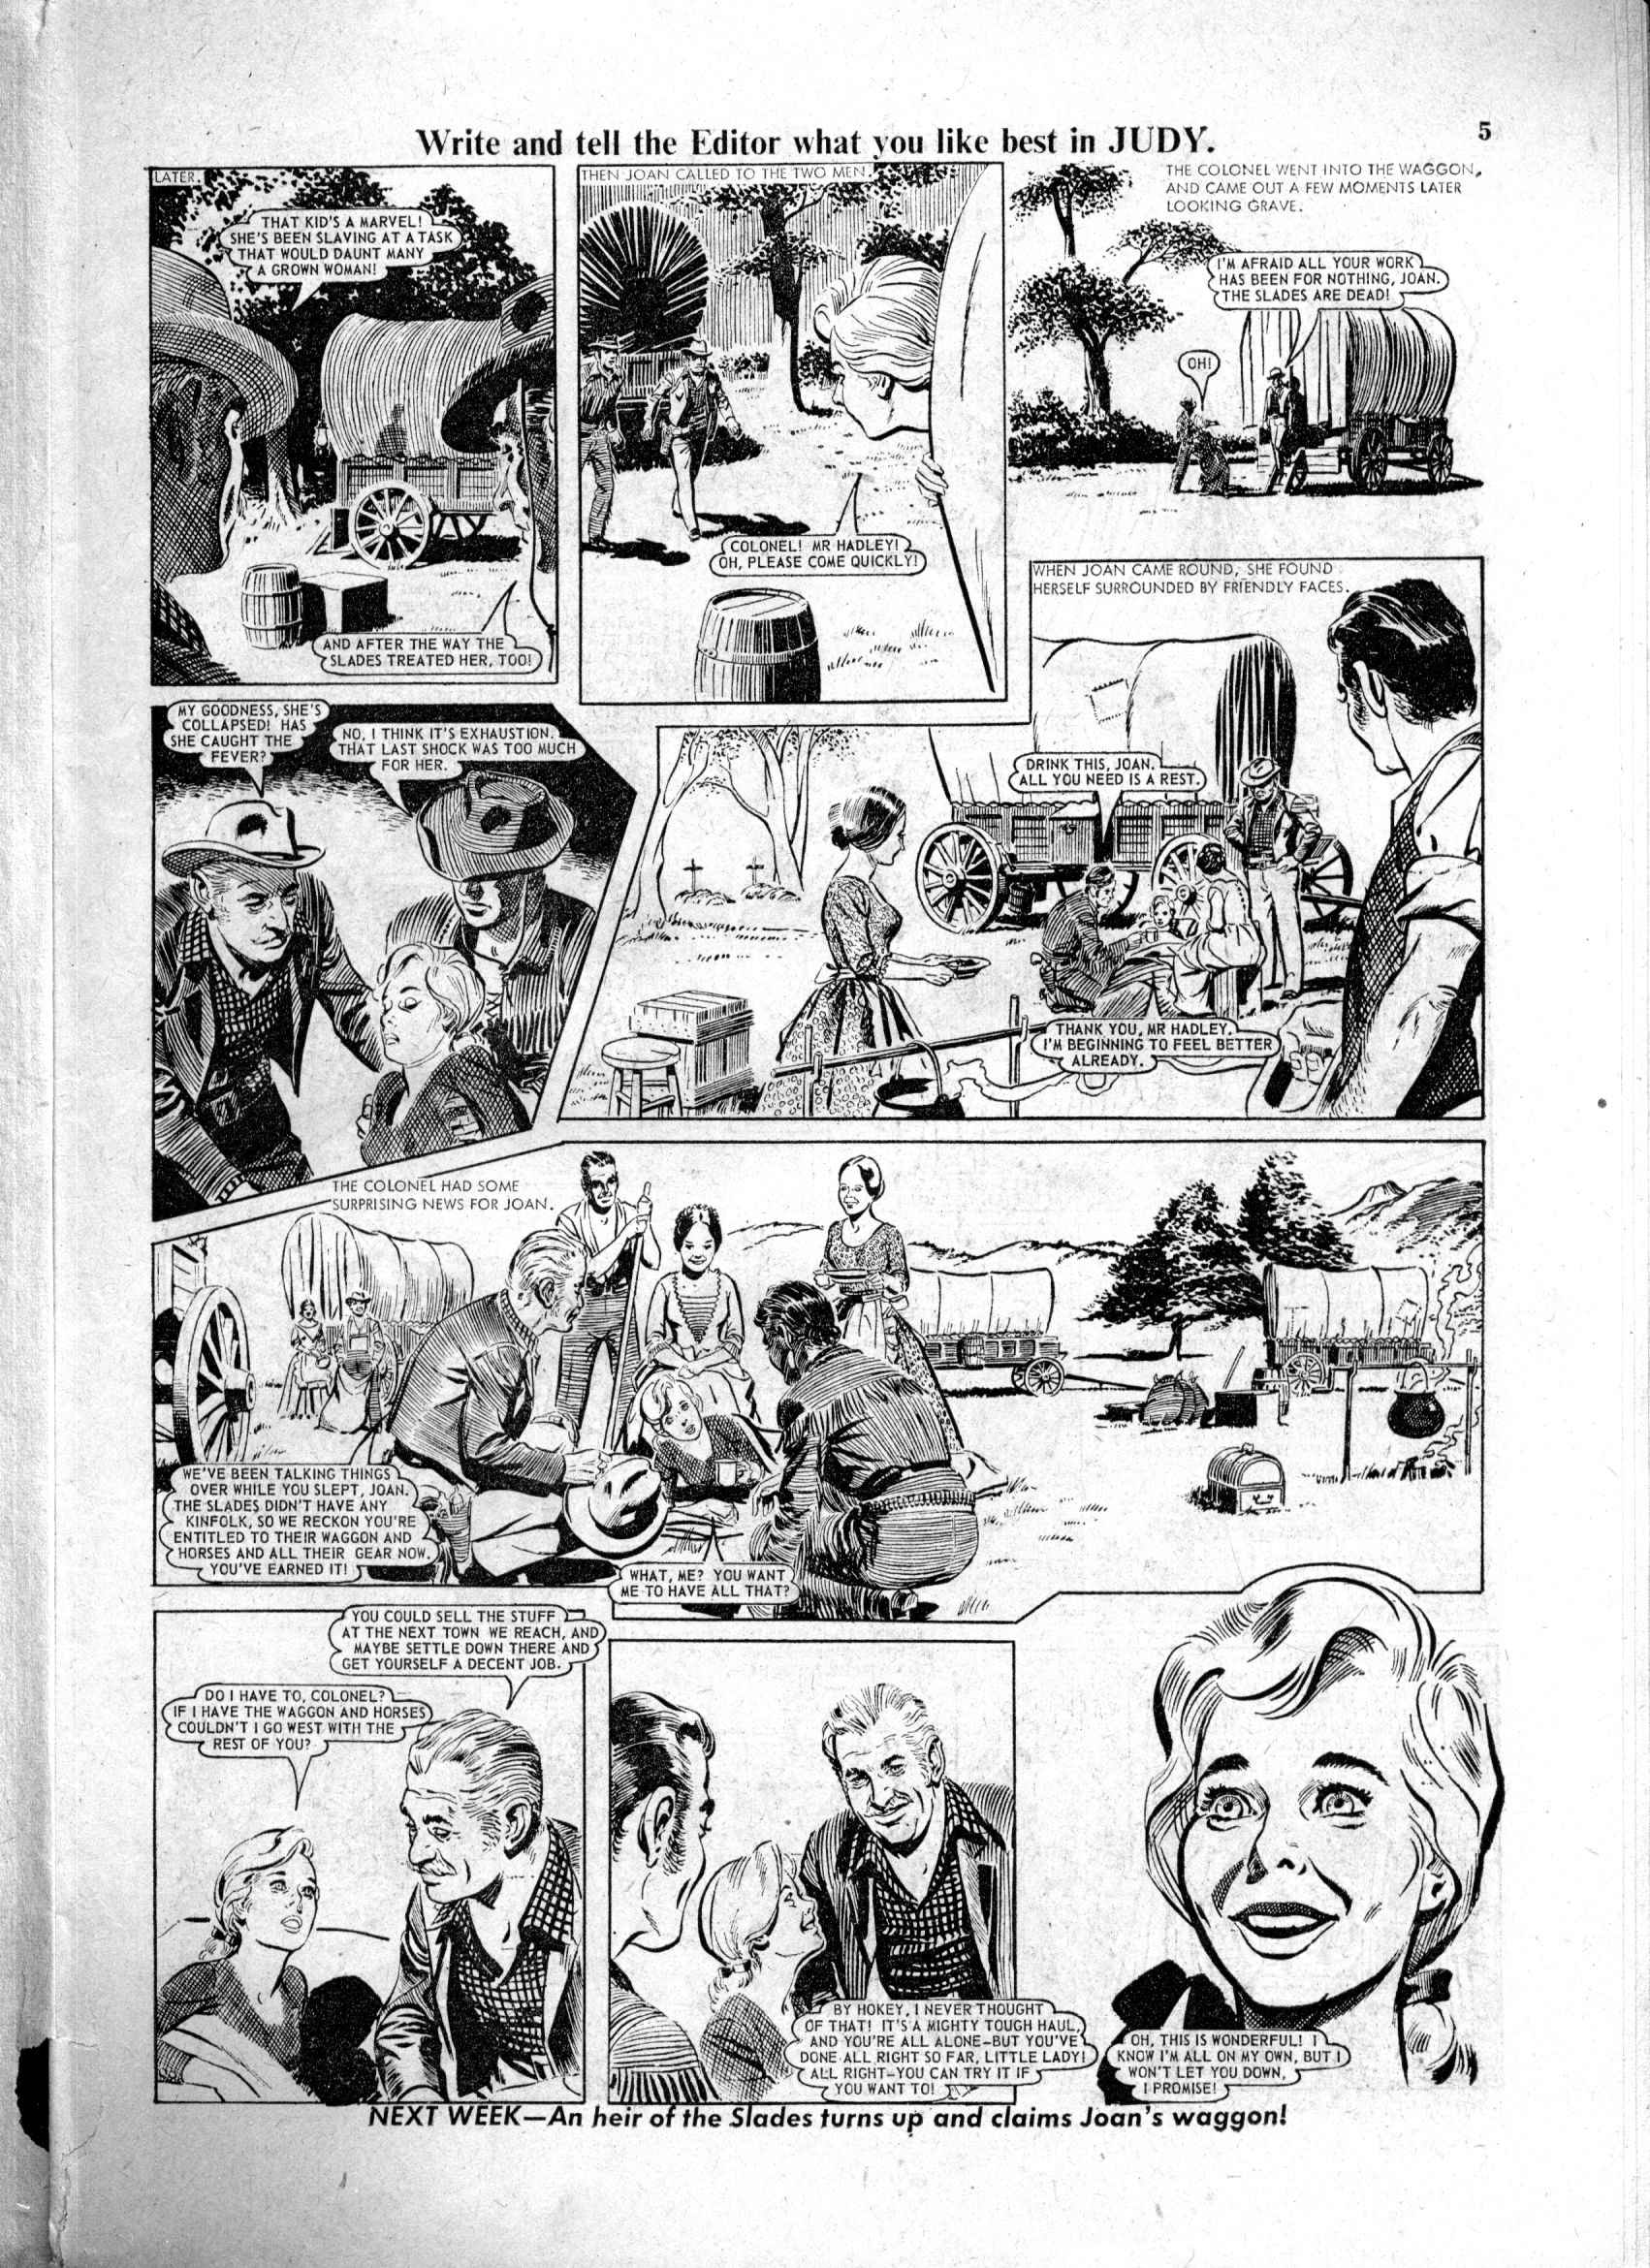 Read online Judy comic -  Issue #229 - 5